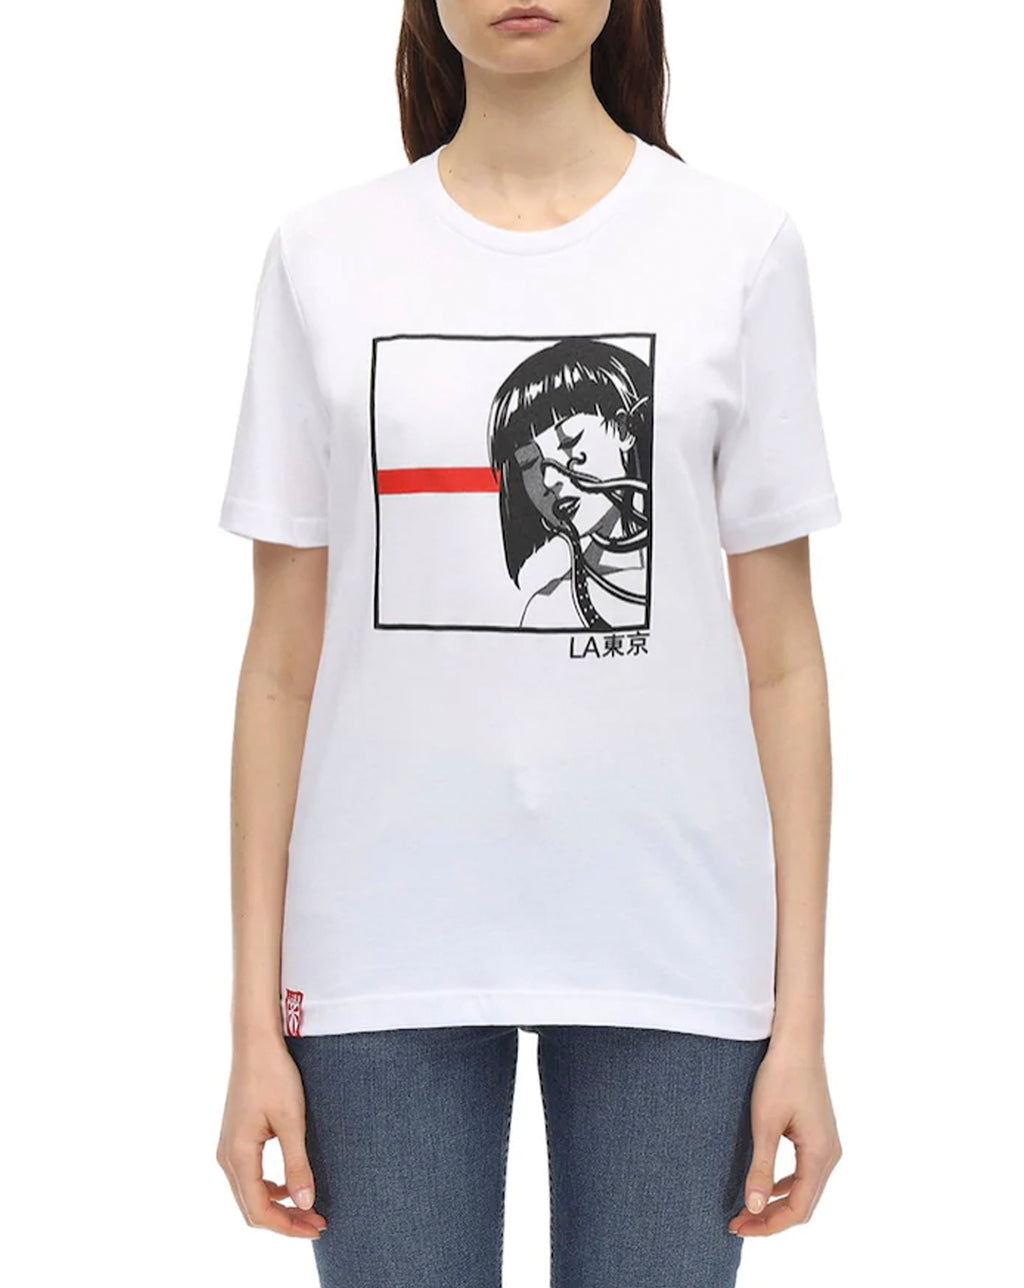 Octopus Girl #2 Tee White